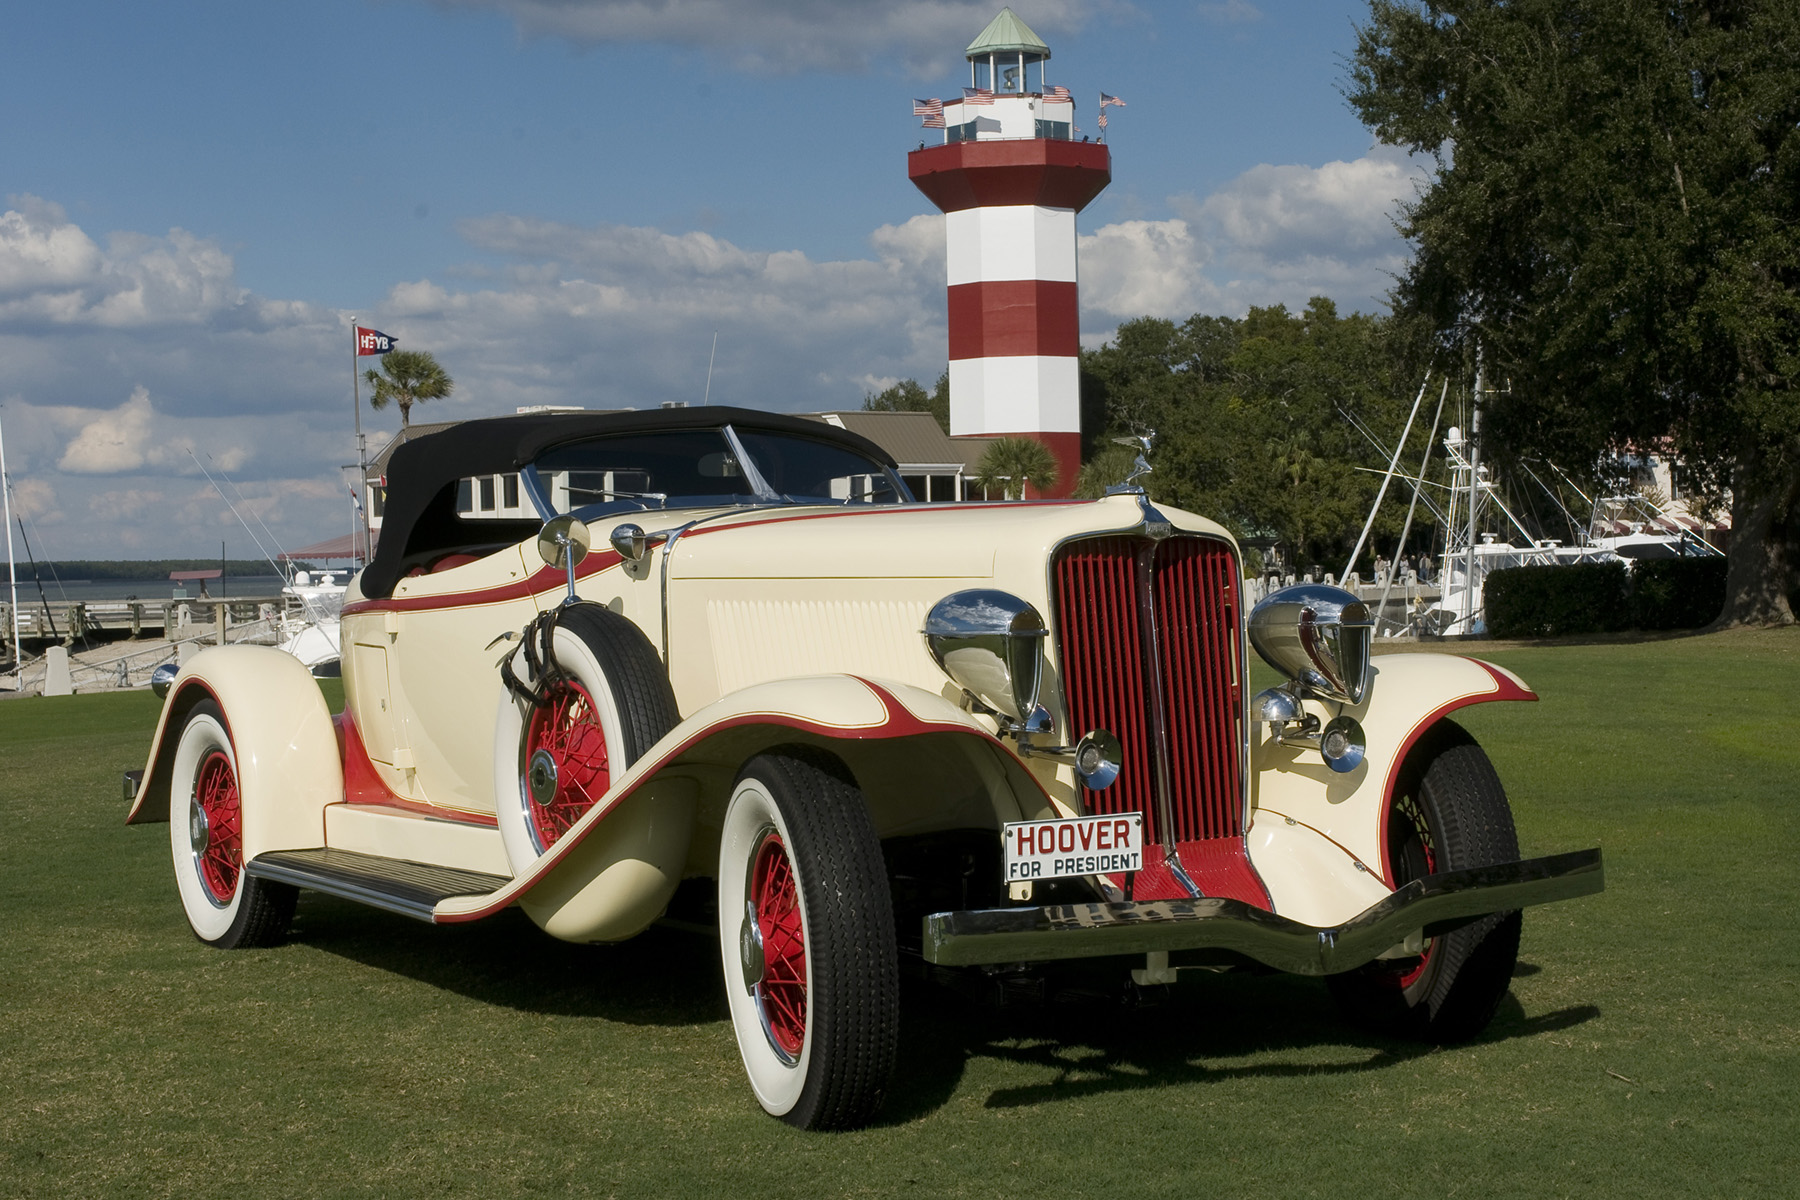 This 1932 Auburn Boattail Speedster owned by J.C. O'Steen of Tallahassee will be on display at the show.